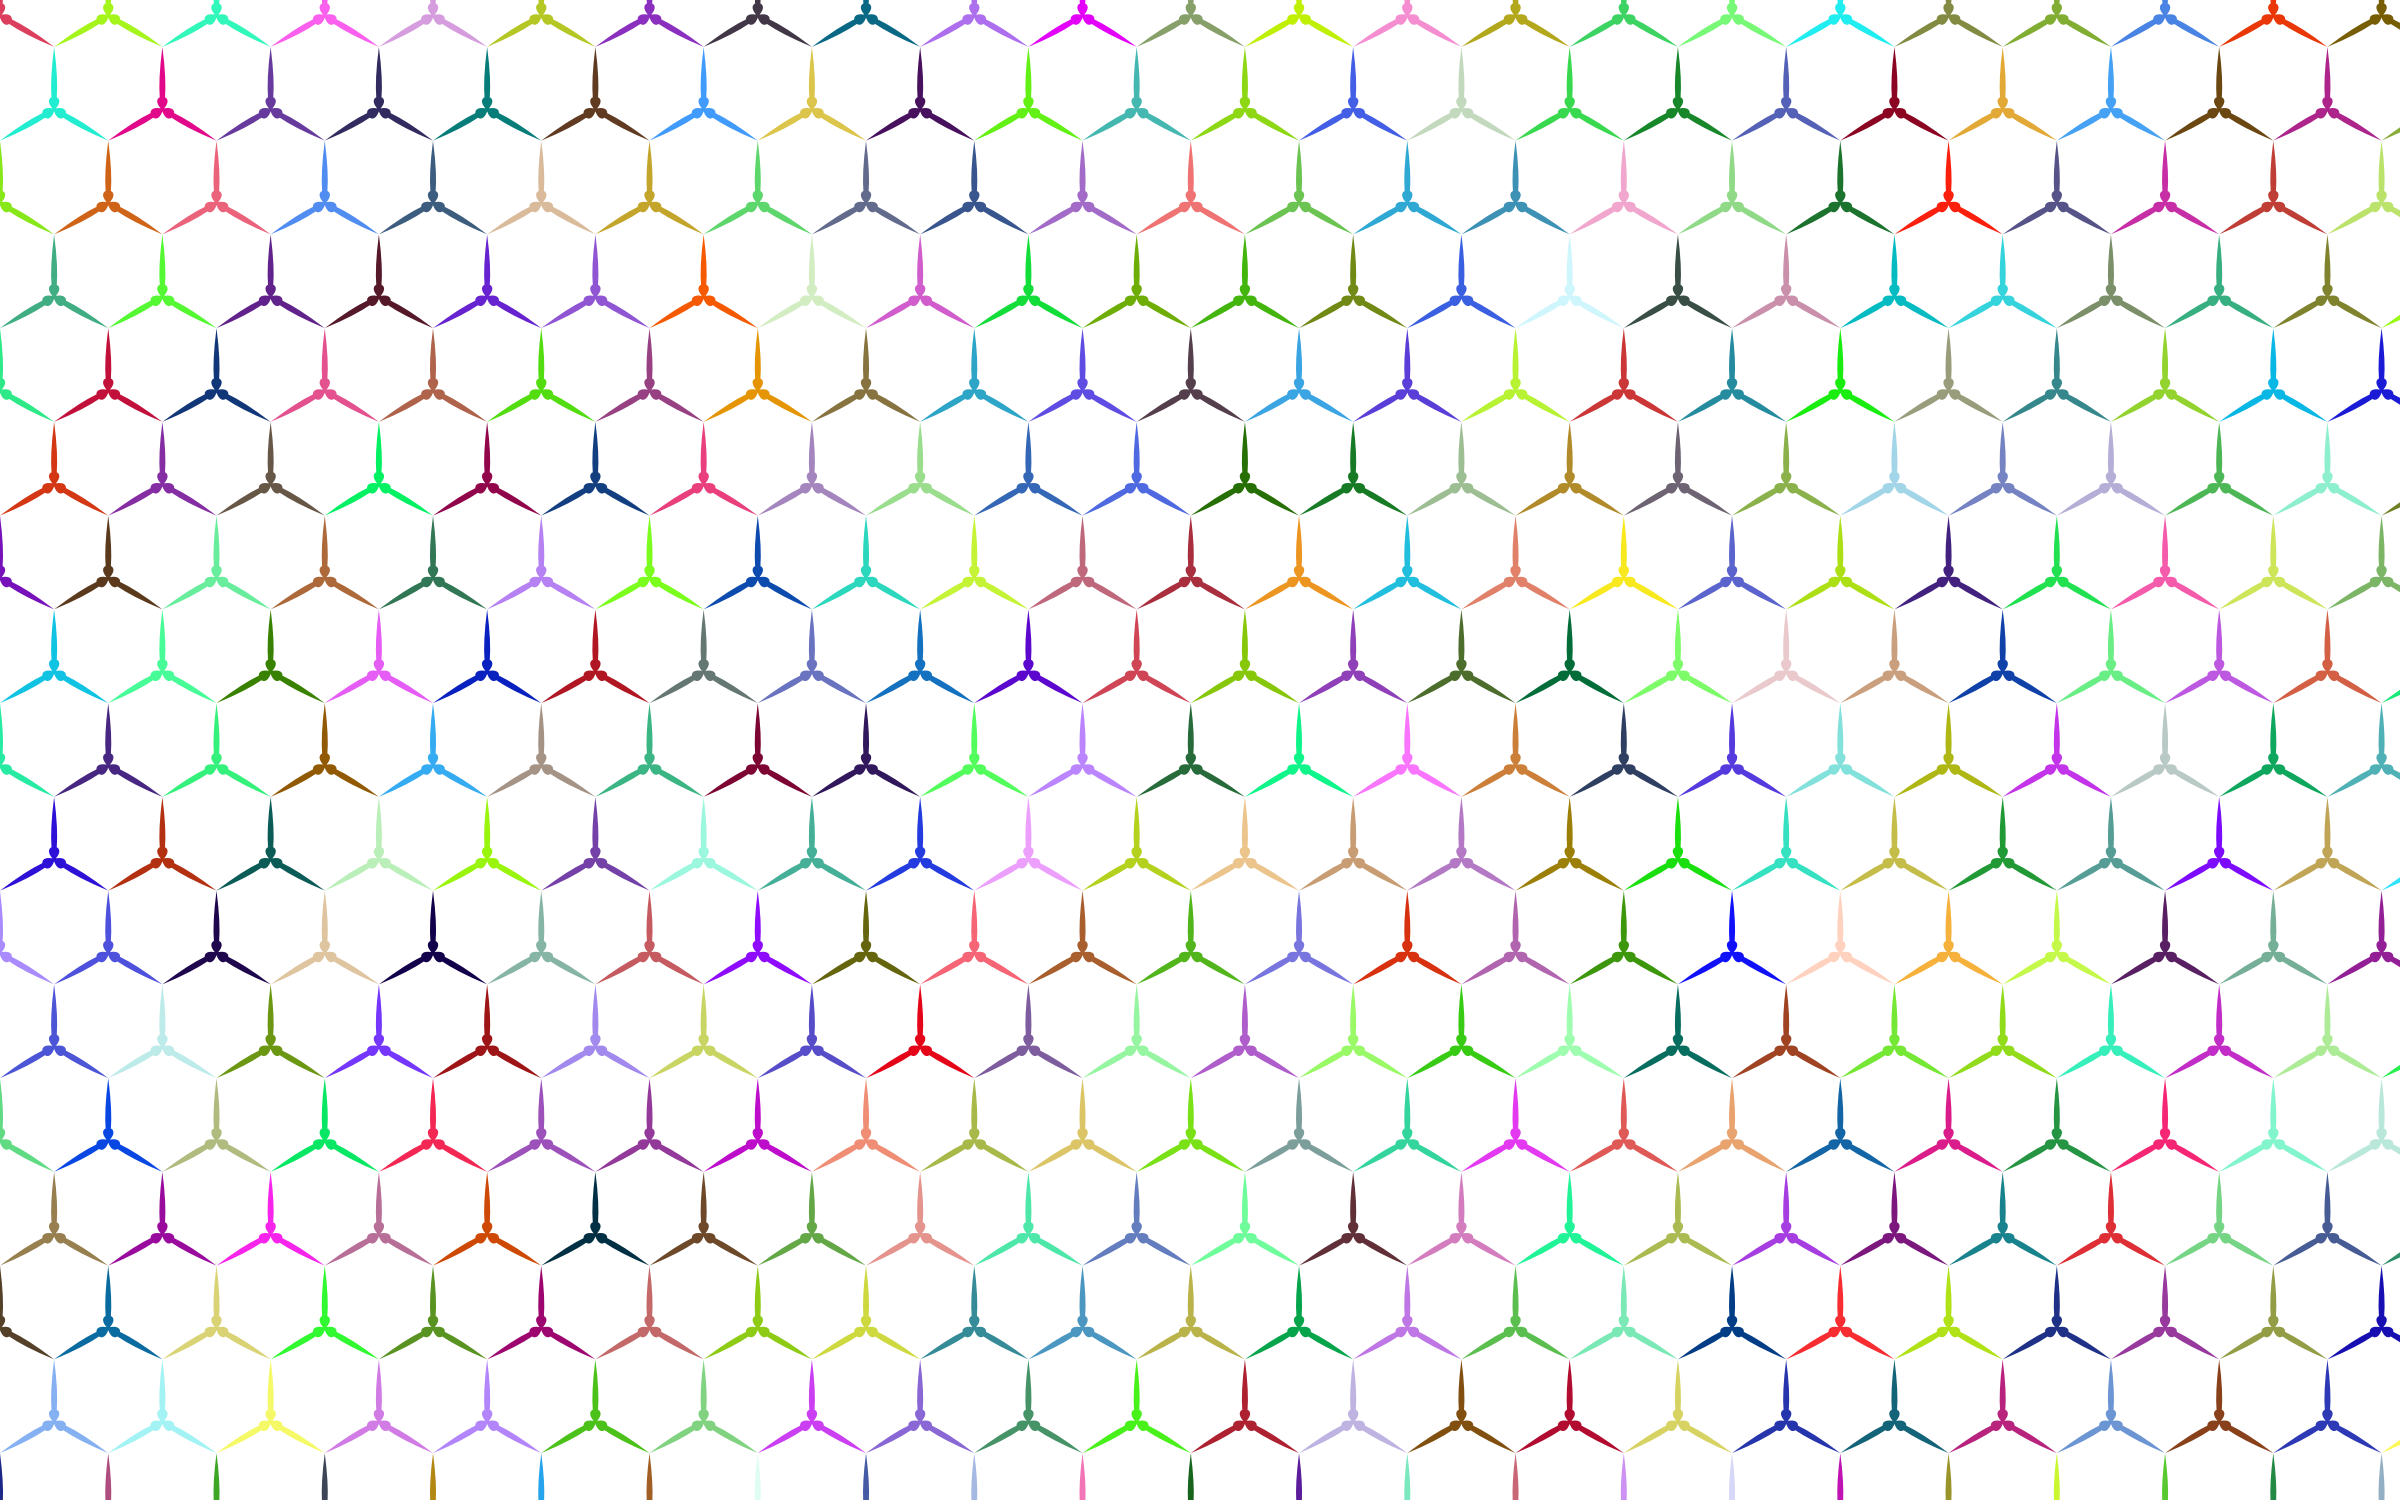 Background pattern png. Prismatic hexagonalism no icons